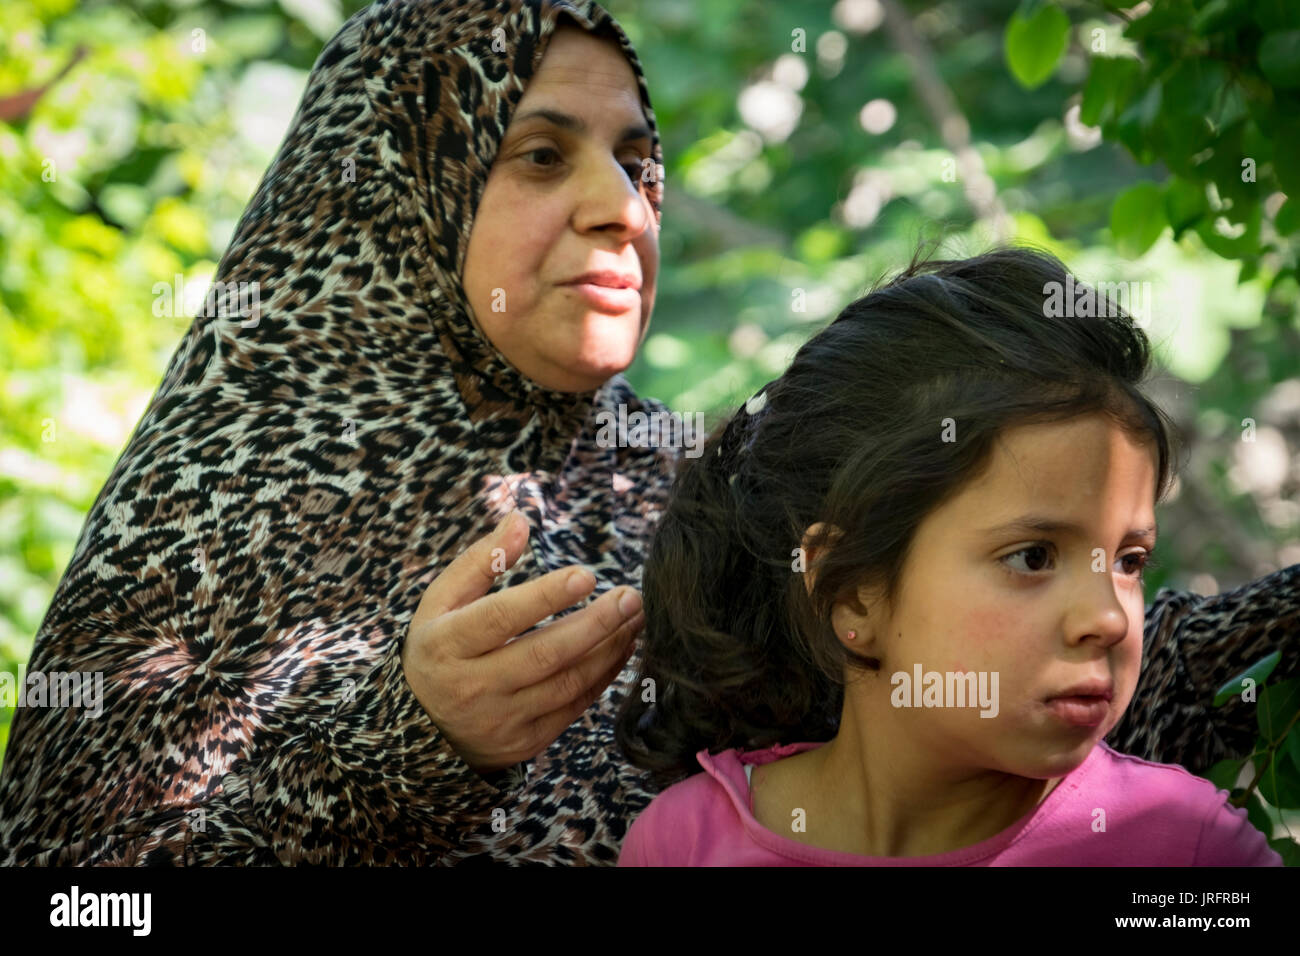 Palestinian mother & daughter describe their interactions with their Israeli settler neighbors in the center of Hebron in the Occupied Territories - Stock Image